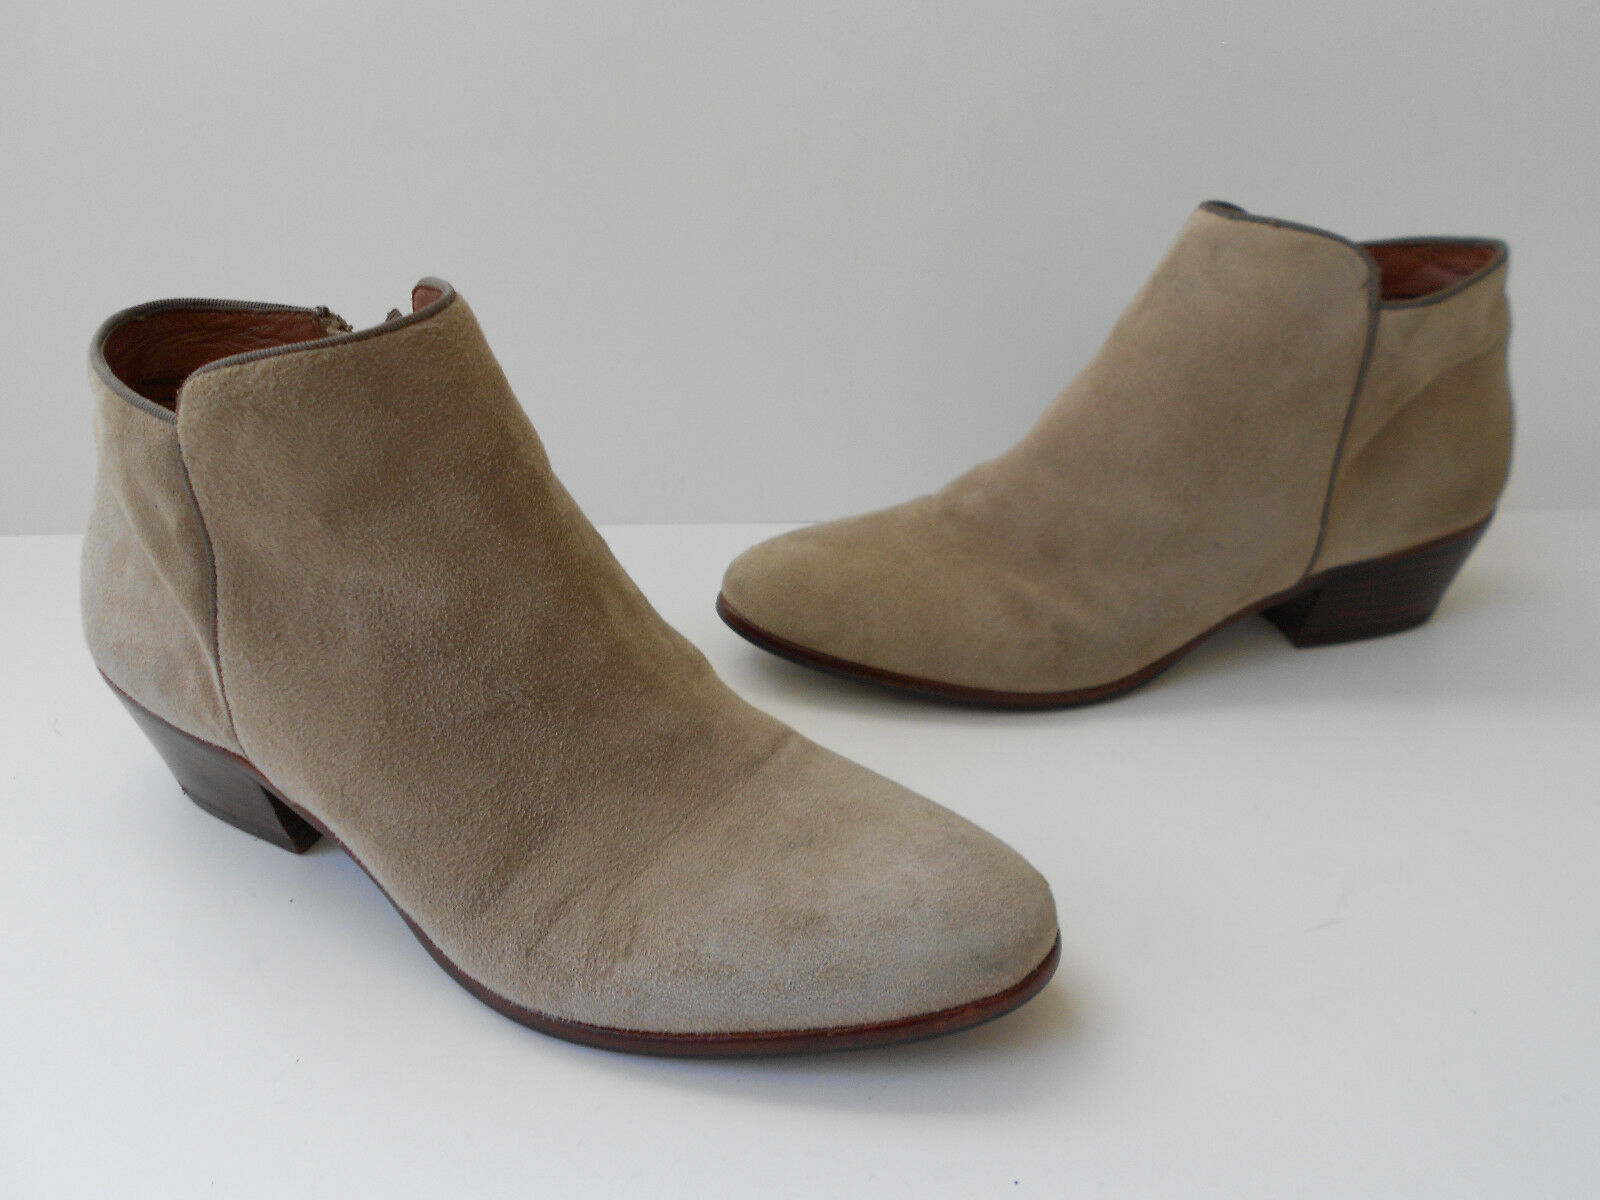 SAM EDELMAN SUEDE LEATHER ANKLE BOOT WOMEN SIZE US 8 SEXY HOT